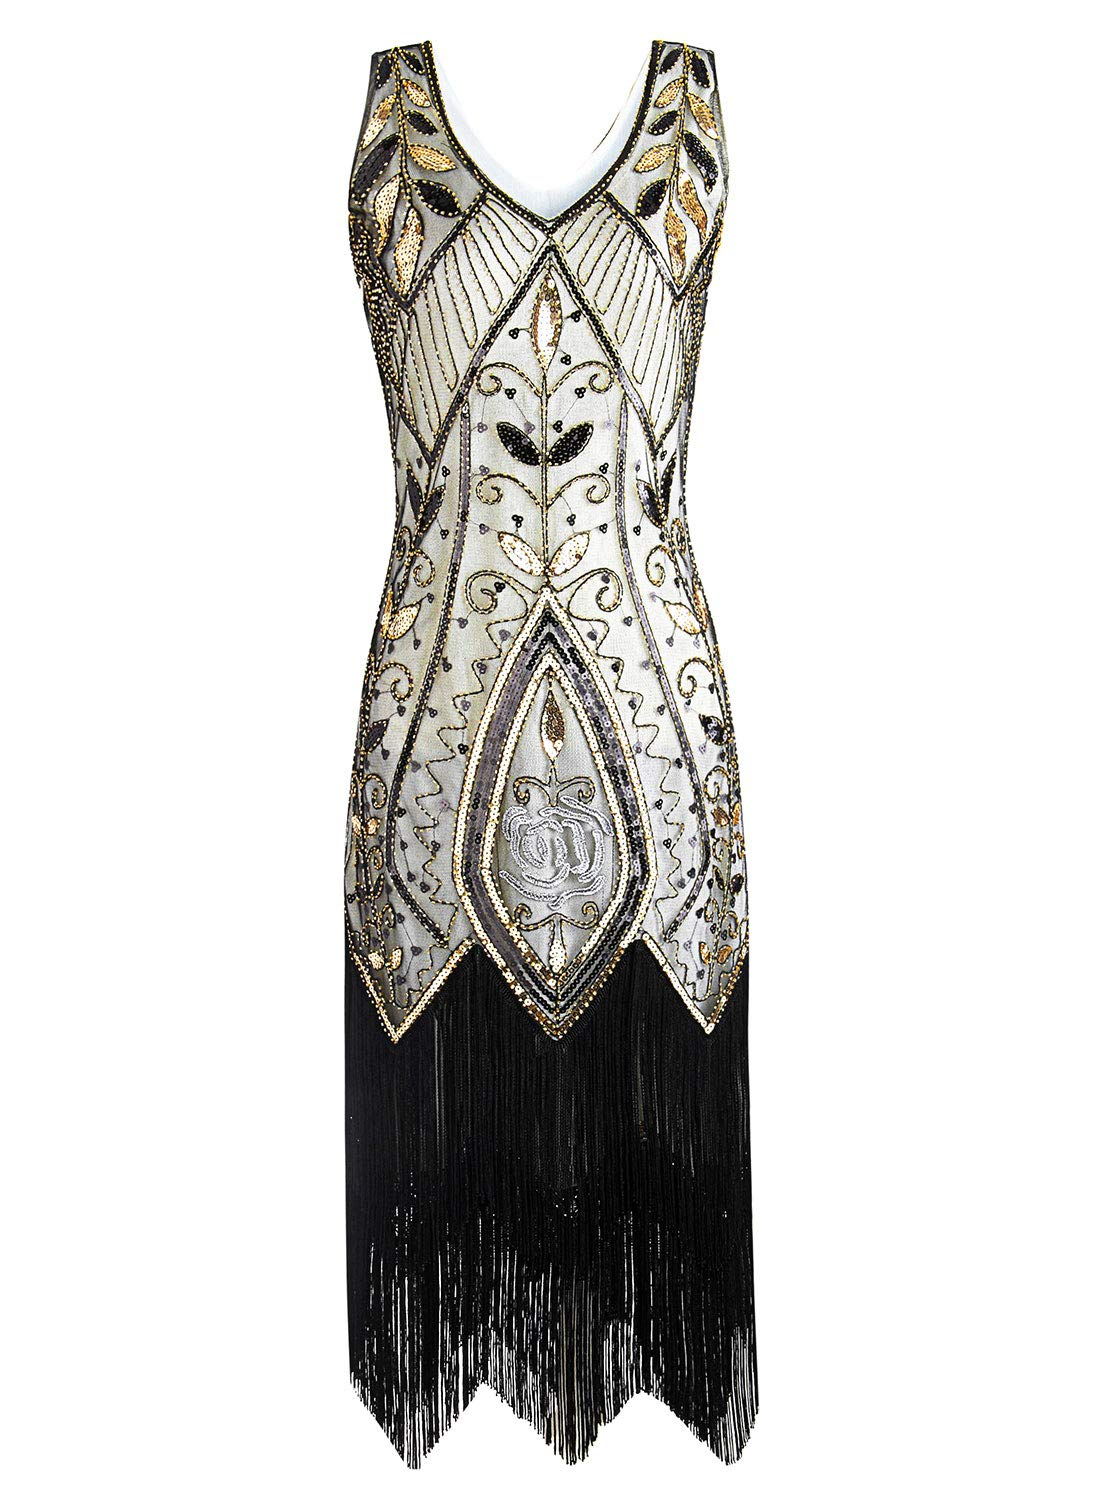 Women Flapper Dresses Plus Size Vintage 1920s Gatsby Inspired Dress Fringed for Prom Party